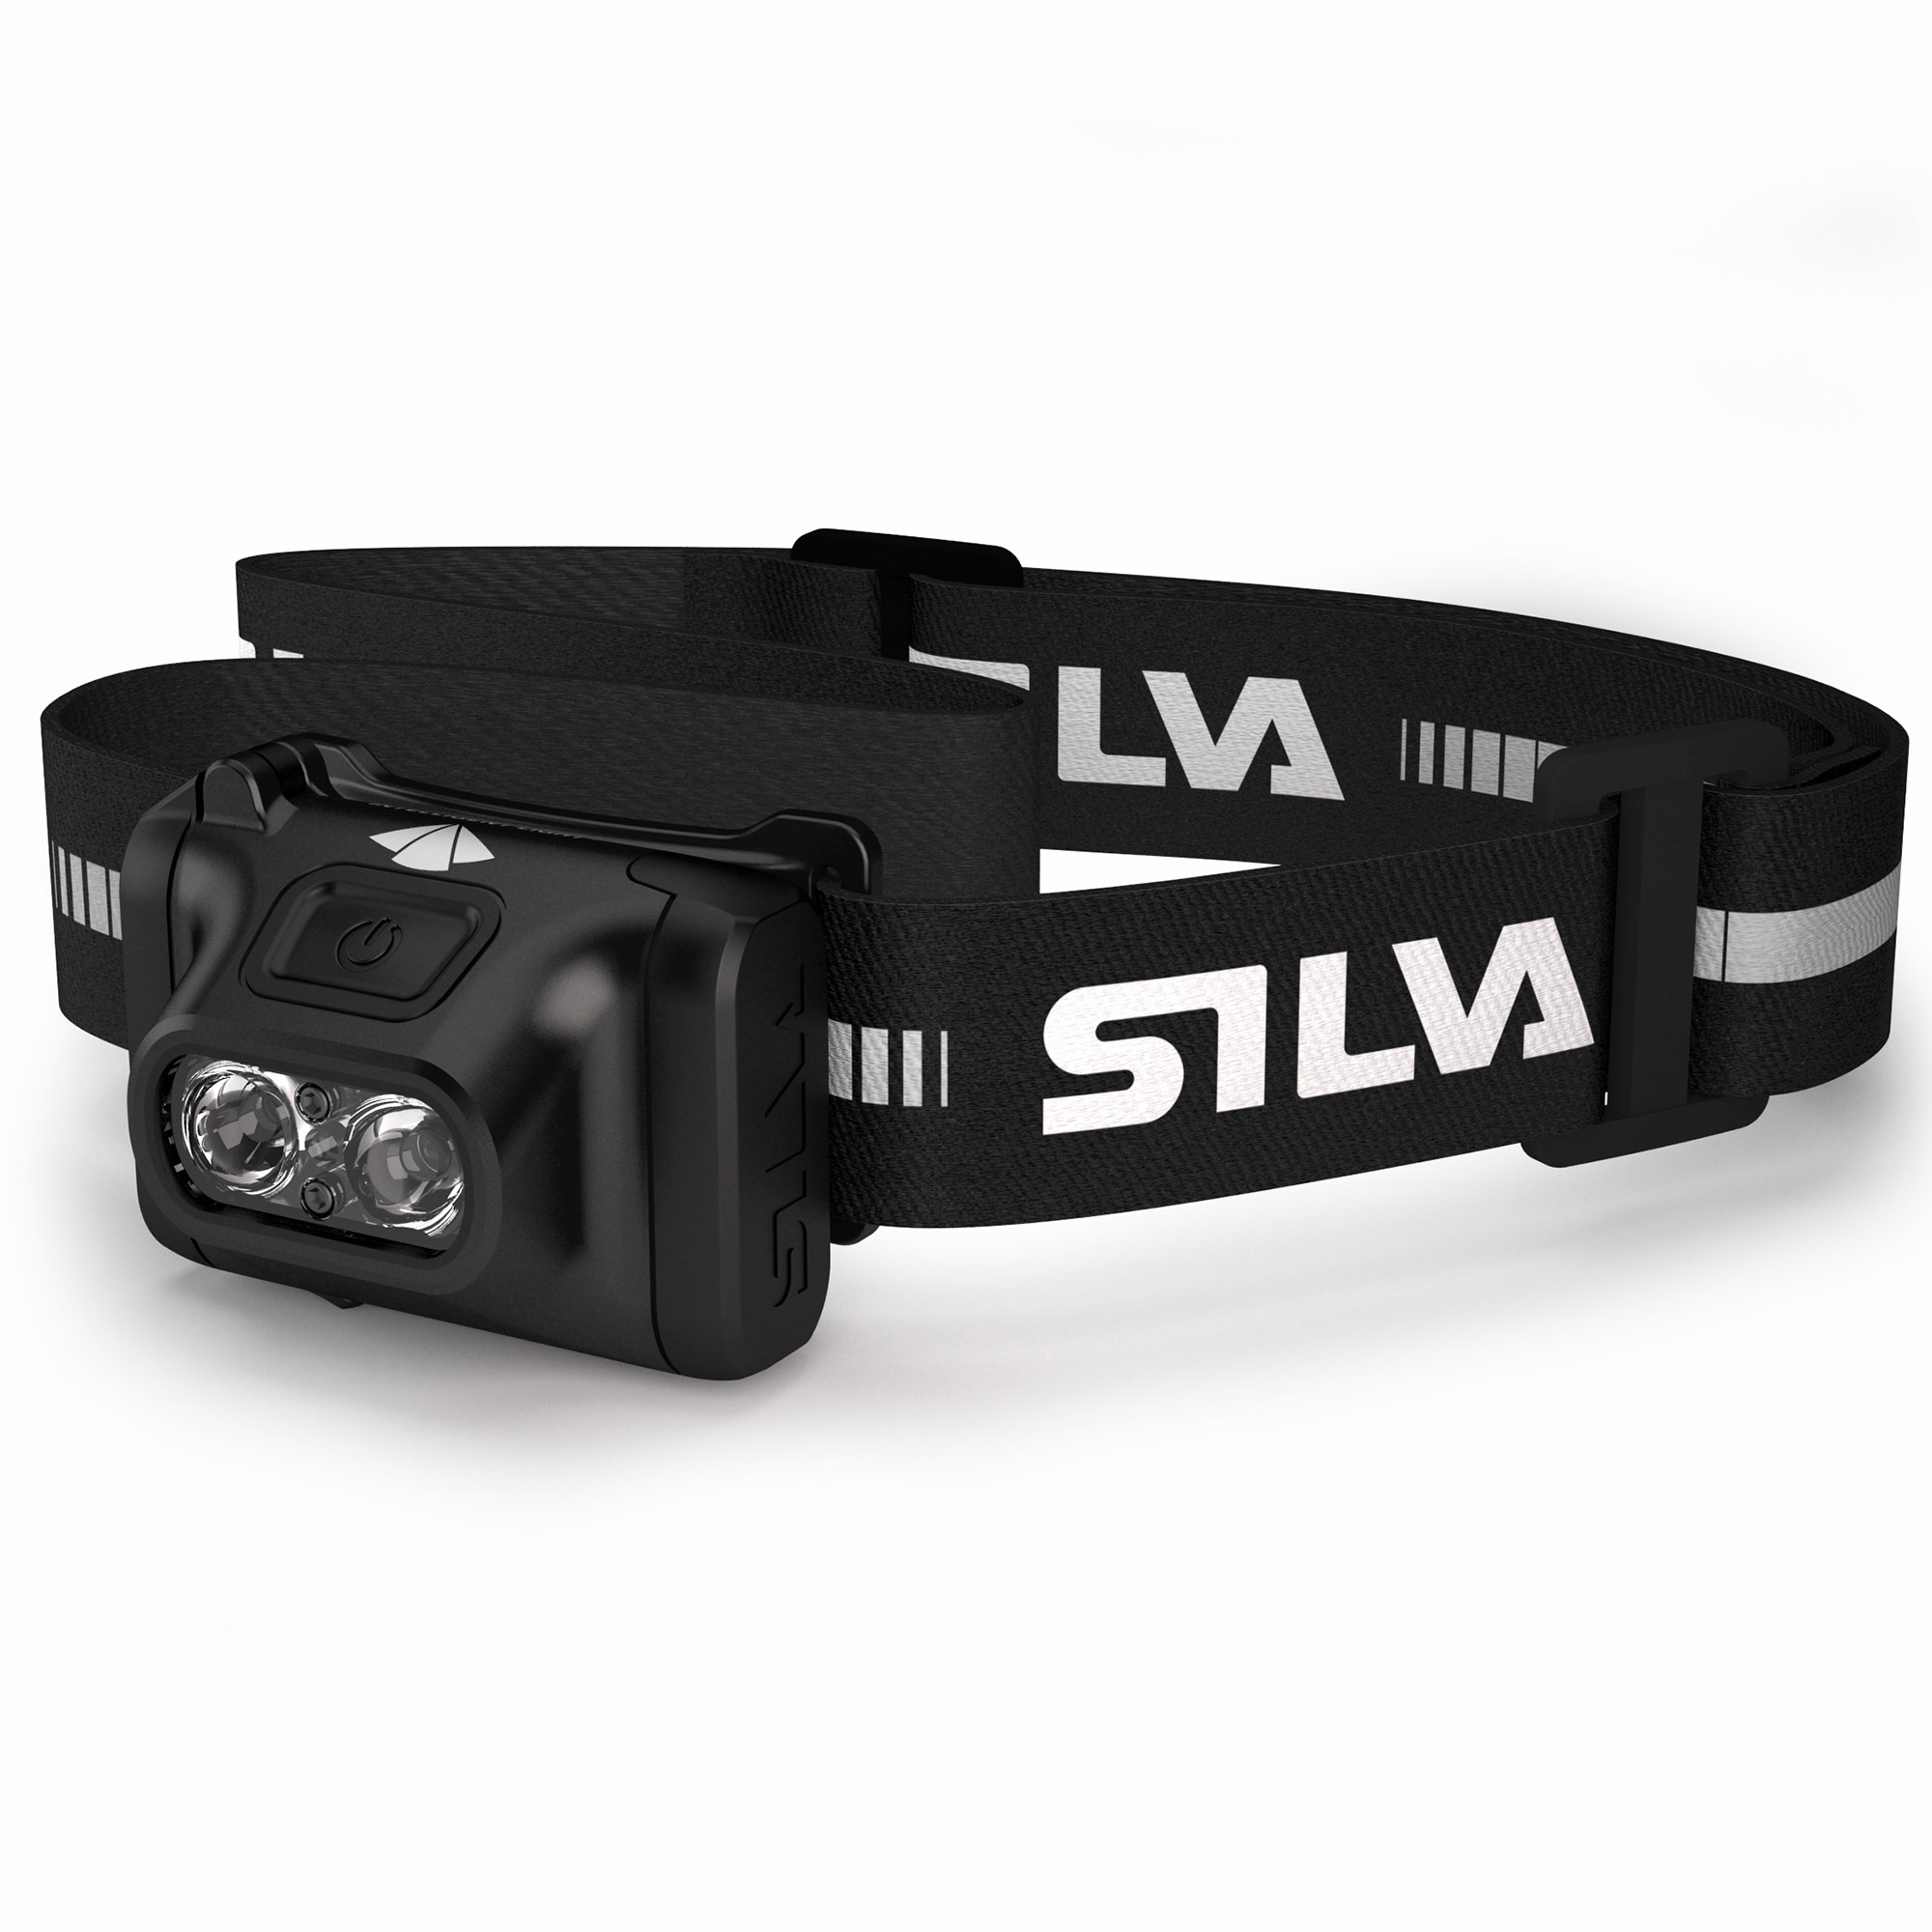 Silva Headlamp Scout RC